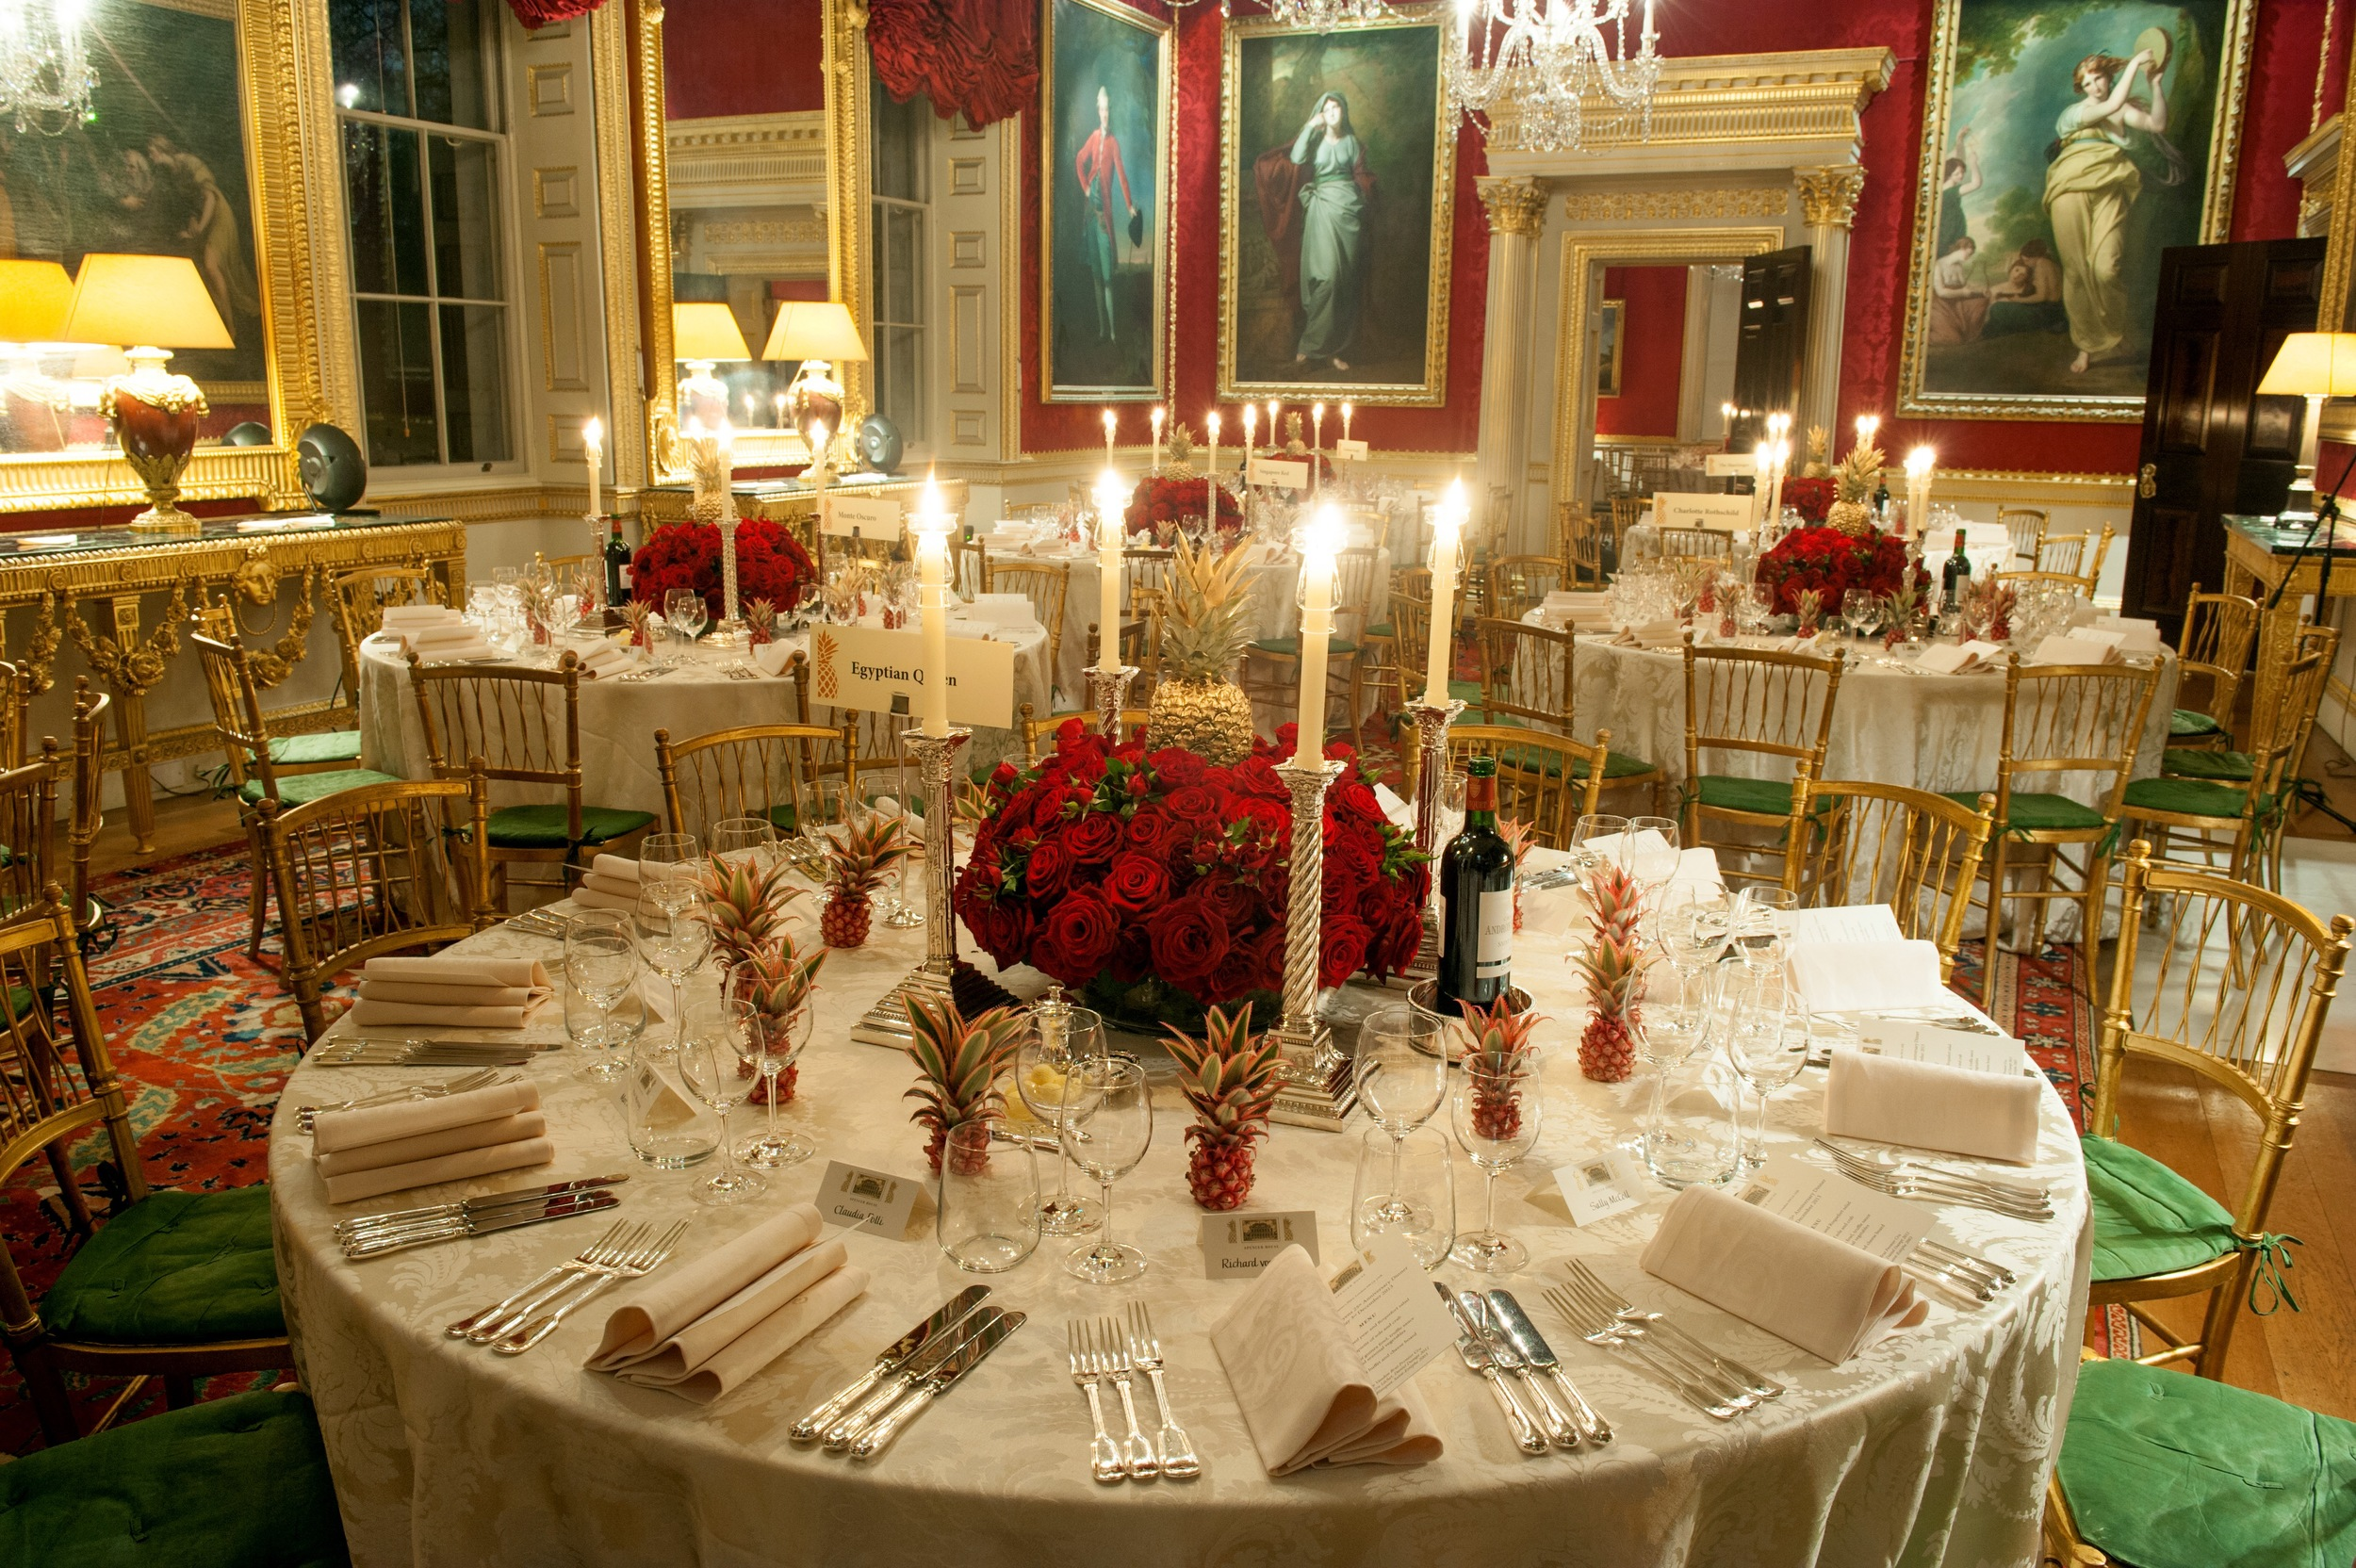 Dining in The Great Room